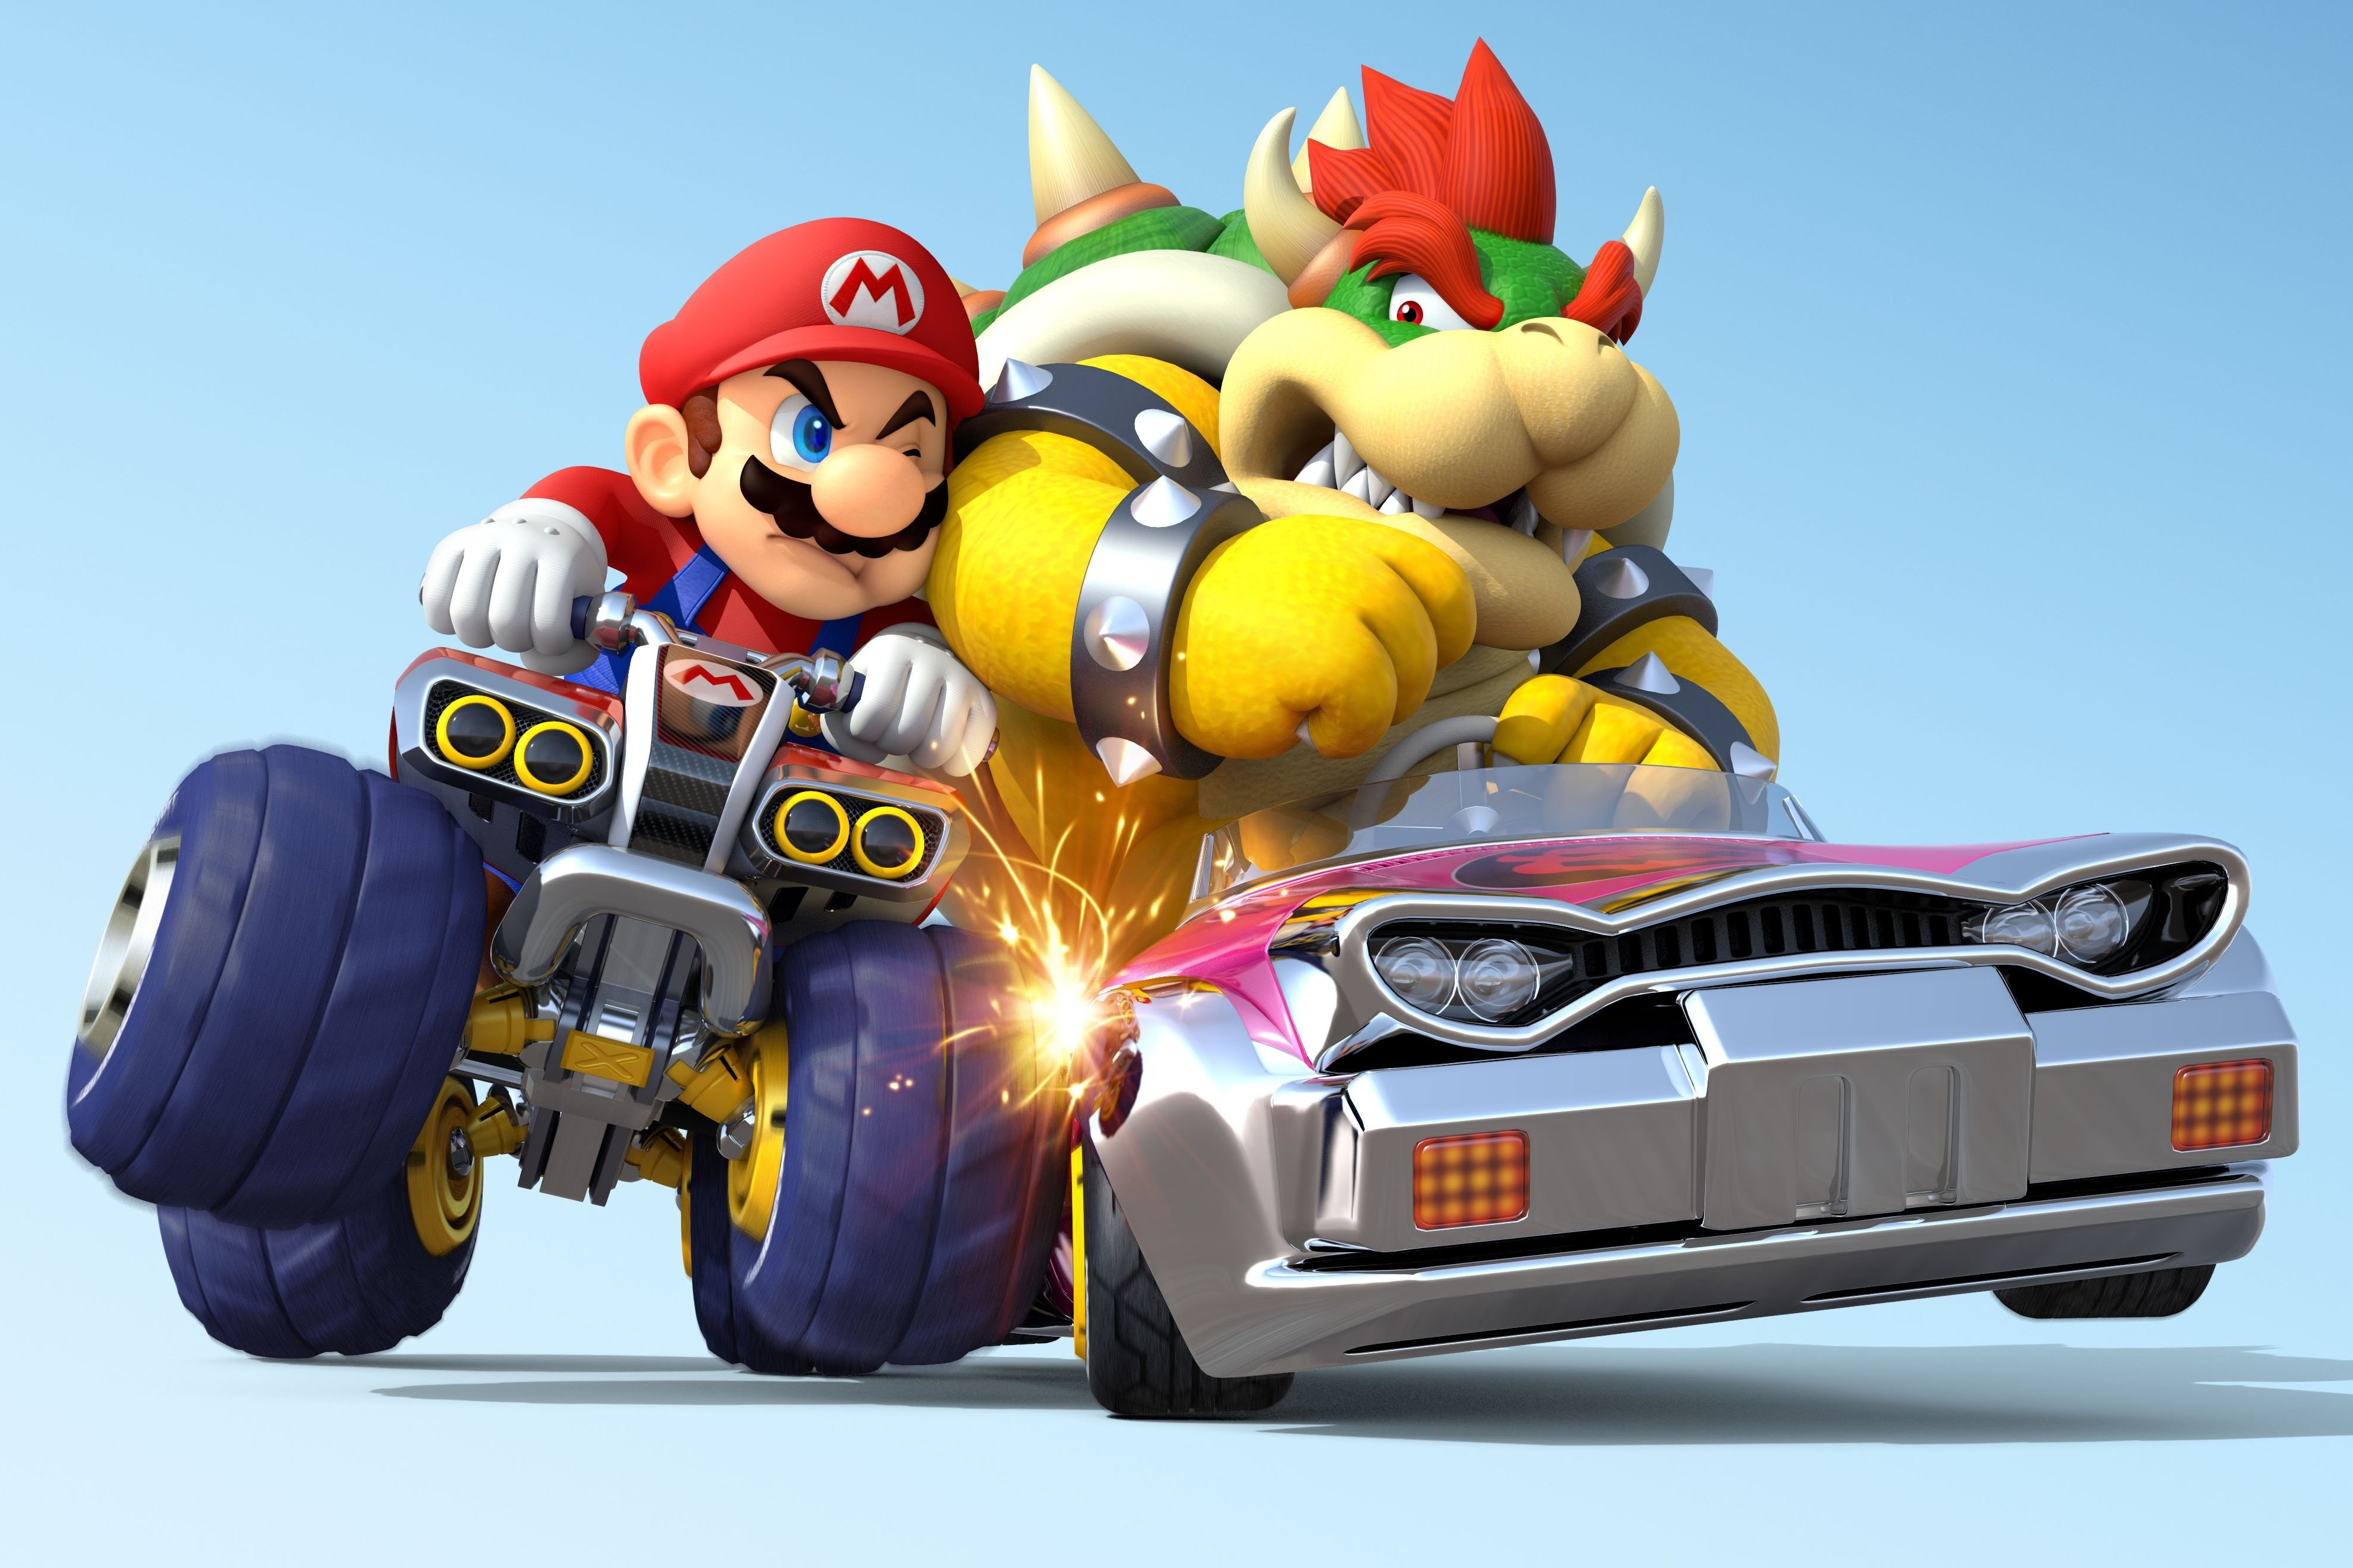 Mario Kart 8 Background: Mario Kart 8 4k Ultra HD Wallpaper